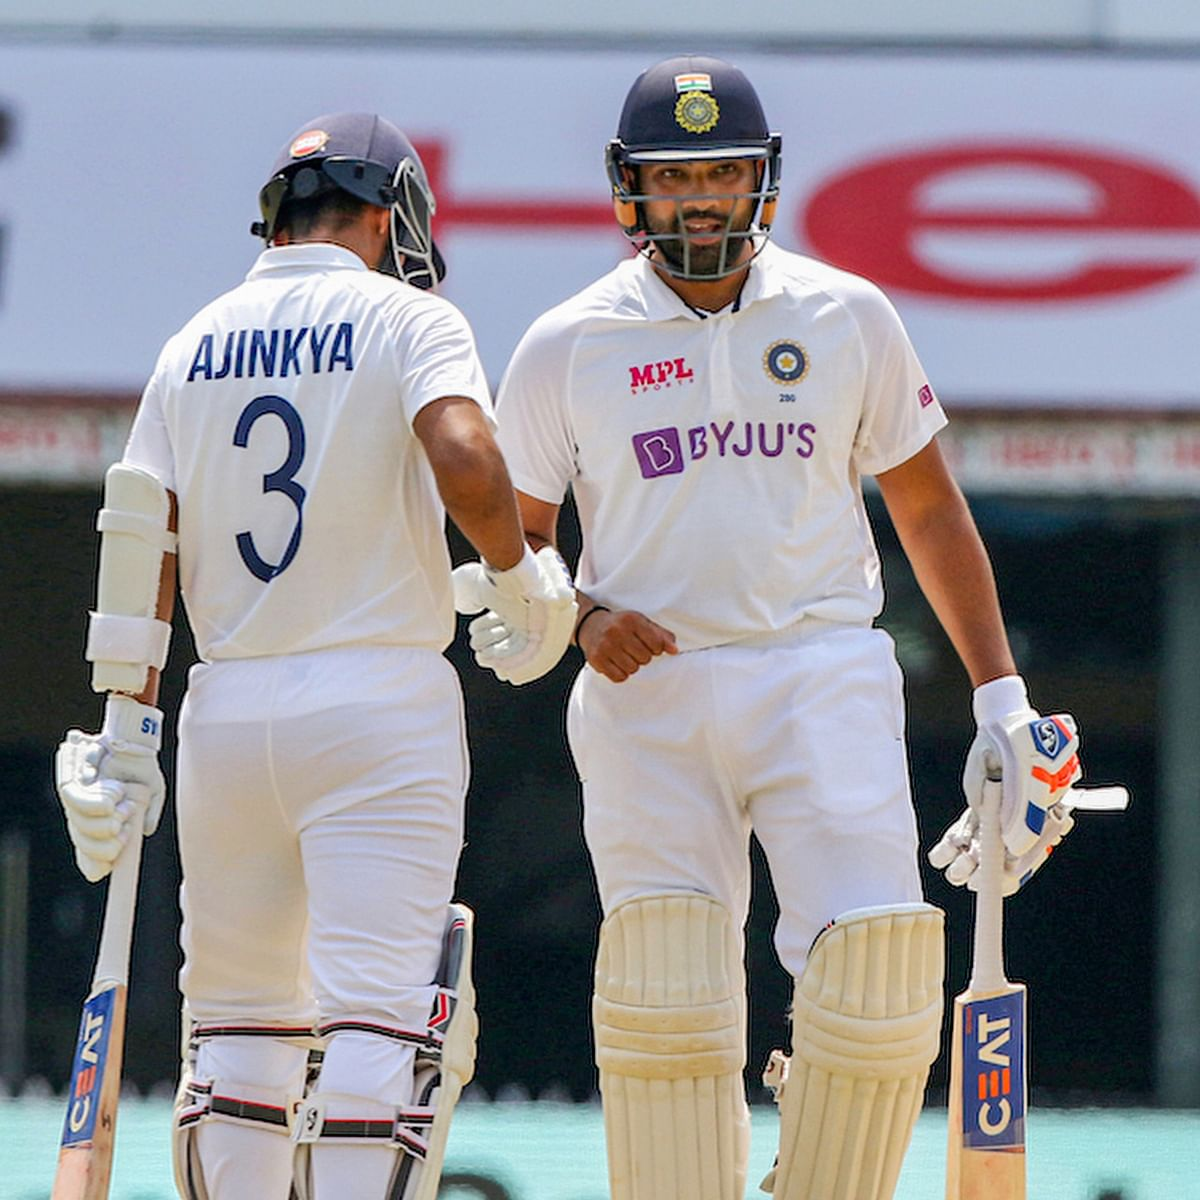 Ind vs Eng, 2nd Test: Rohit Sharma's ton takes India to 189/3 at tea on Day 1